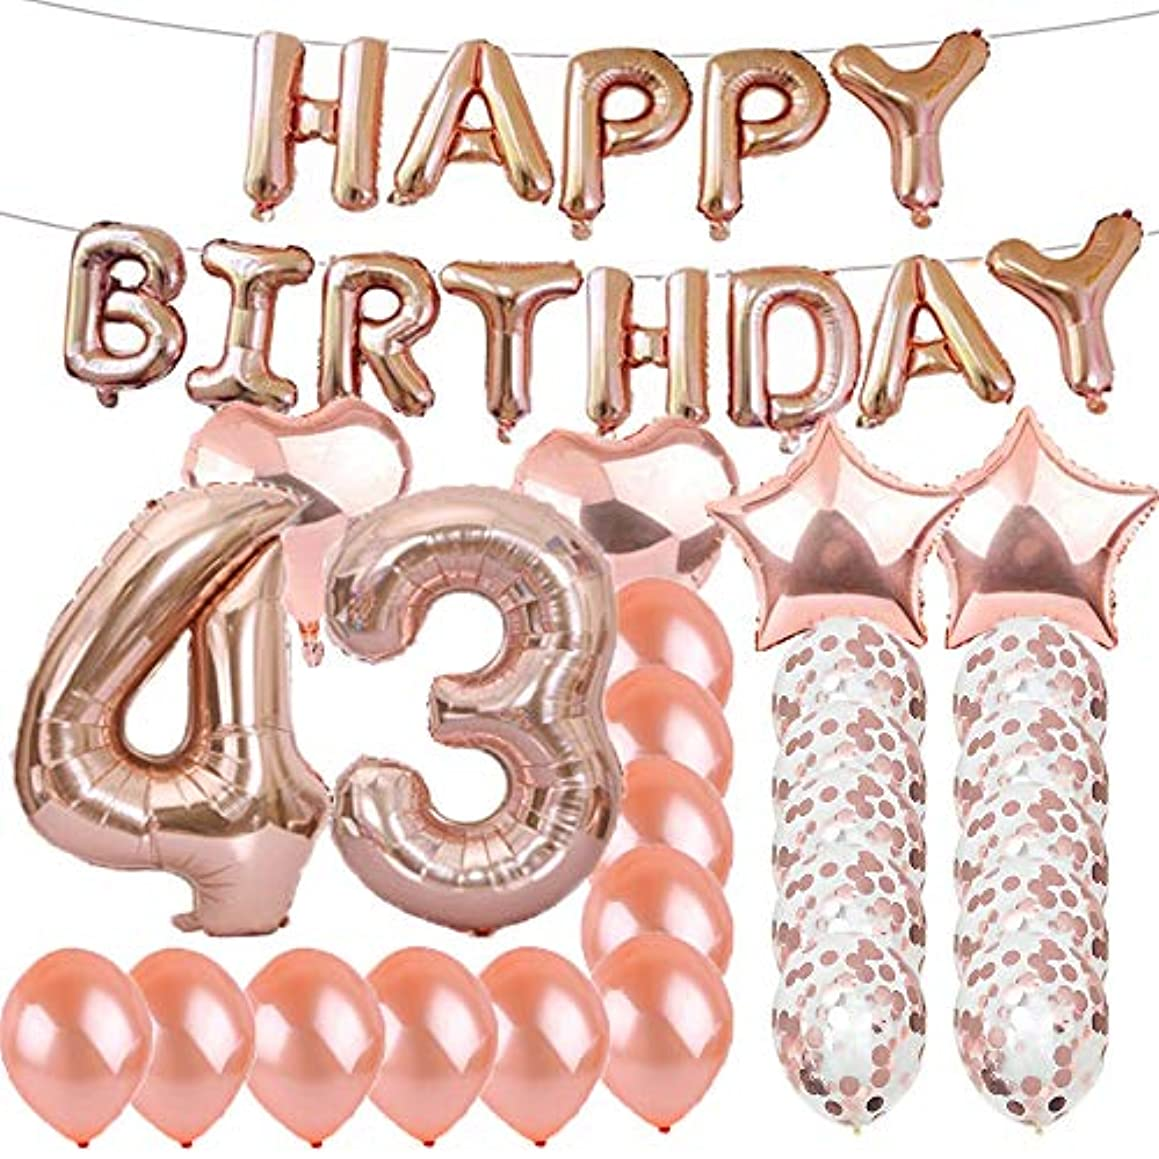 Sweet 43th Birthday Decorations Party Supplies,Rose Gold Number 43 Balloons,43th Foil Mylar Balloons Latex Balloon Decoration,Great 43th Birthday Gifts for Girls,Women,Men,Photo Props